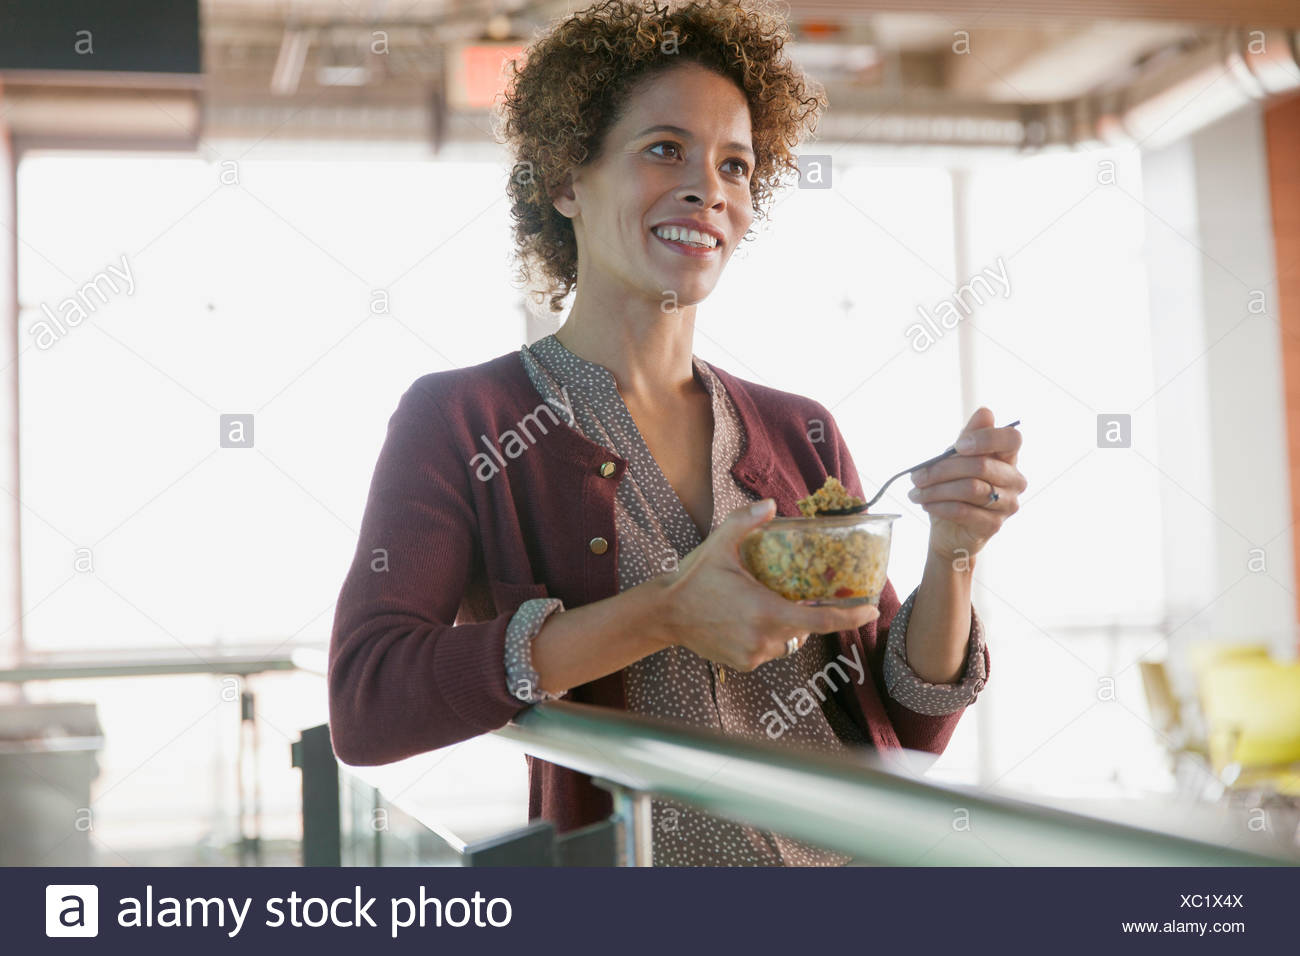 Woman snacking at office. - Stock Image